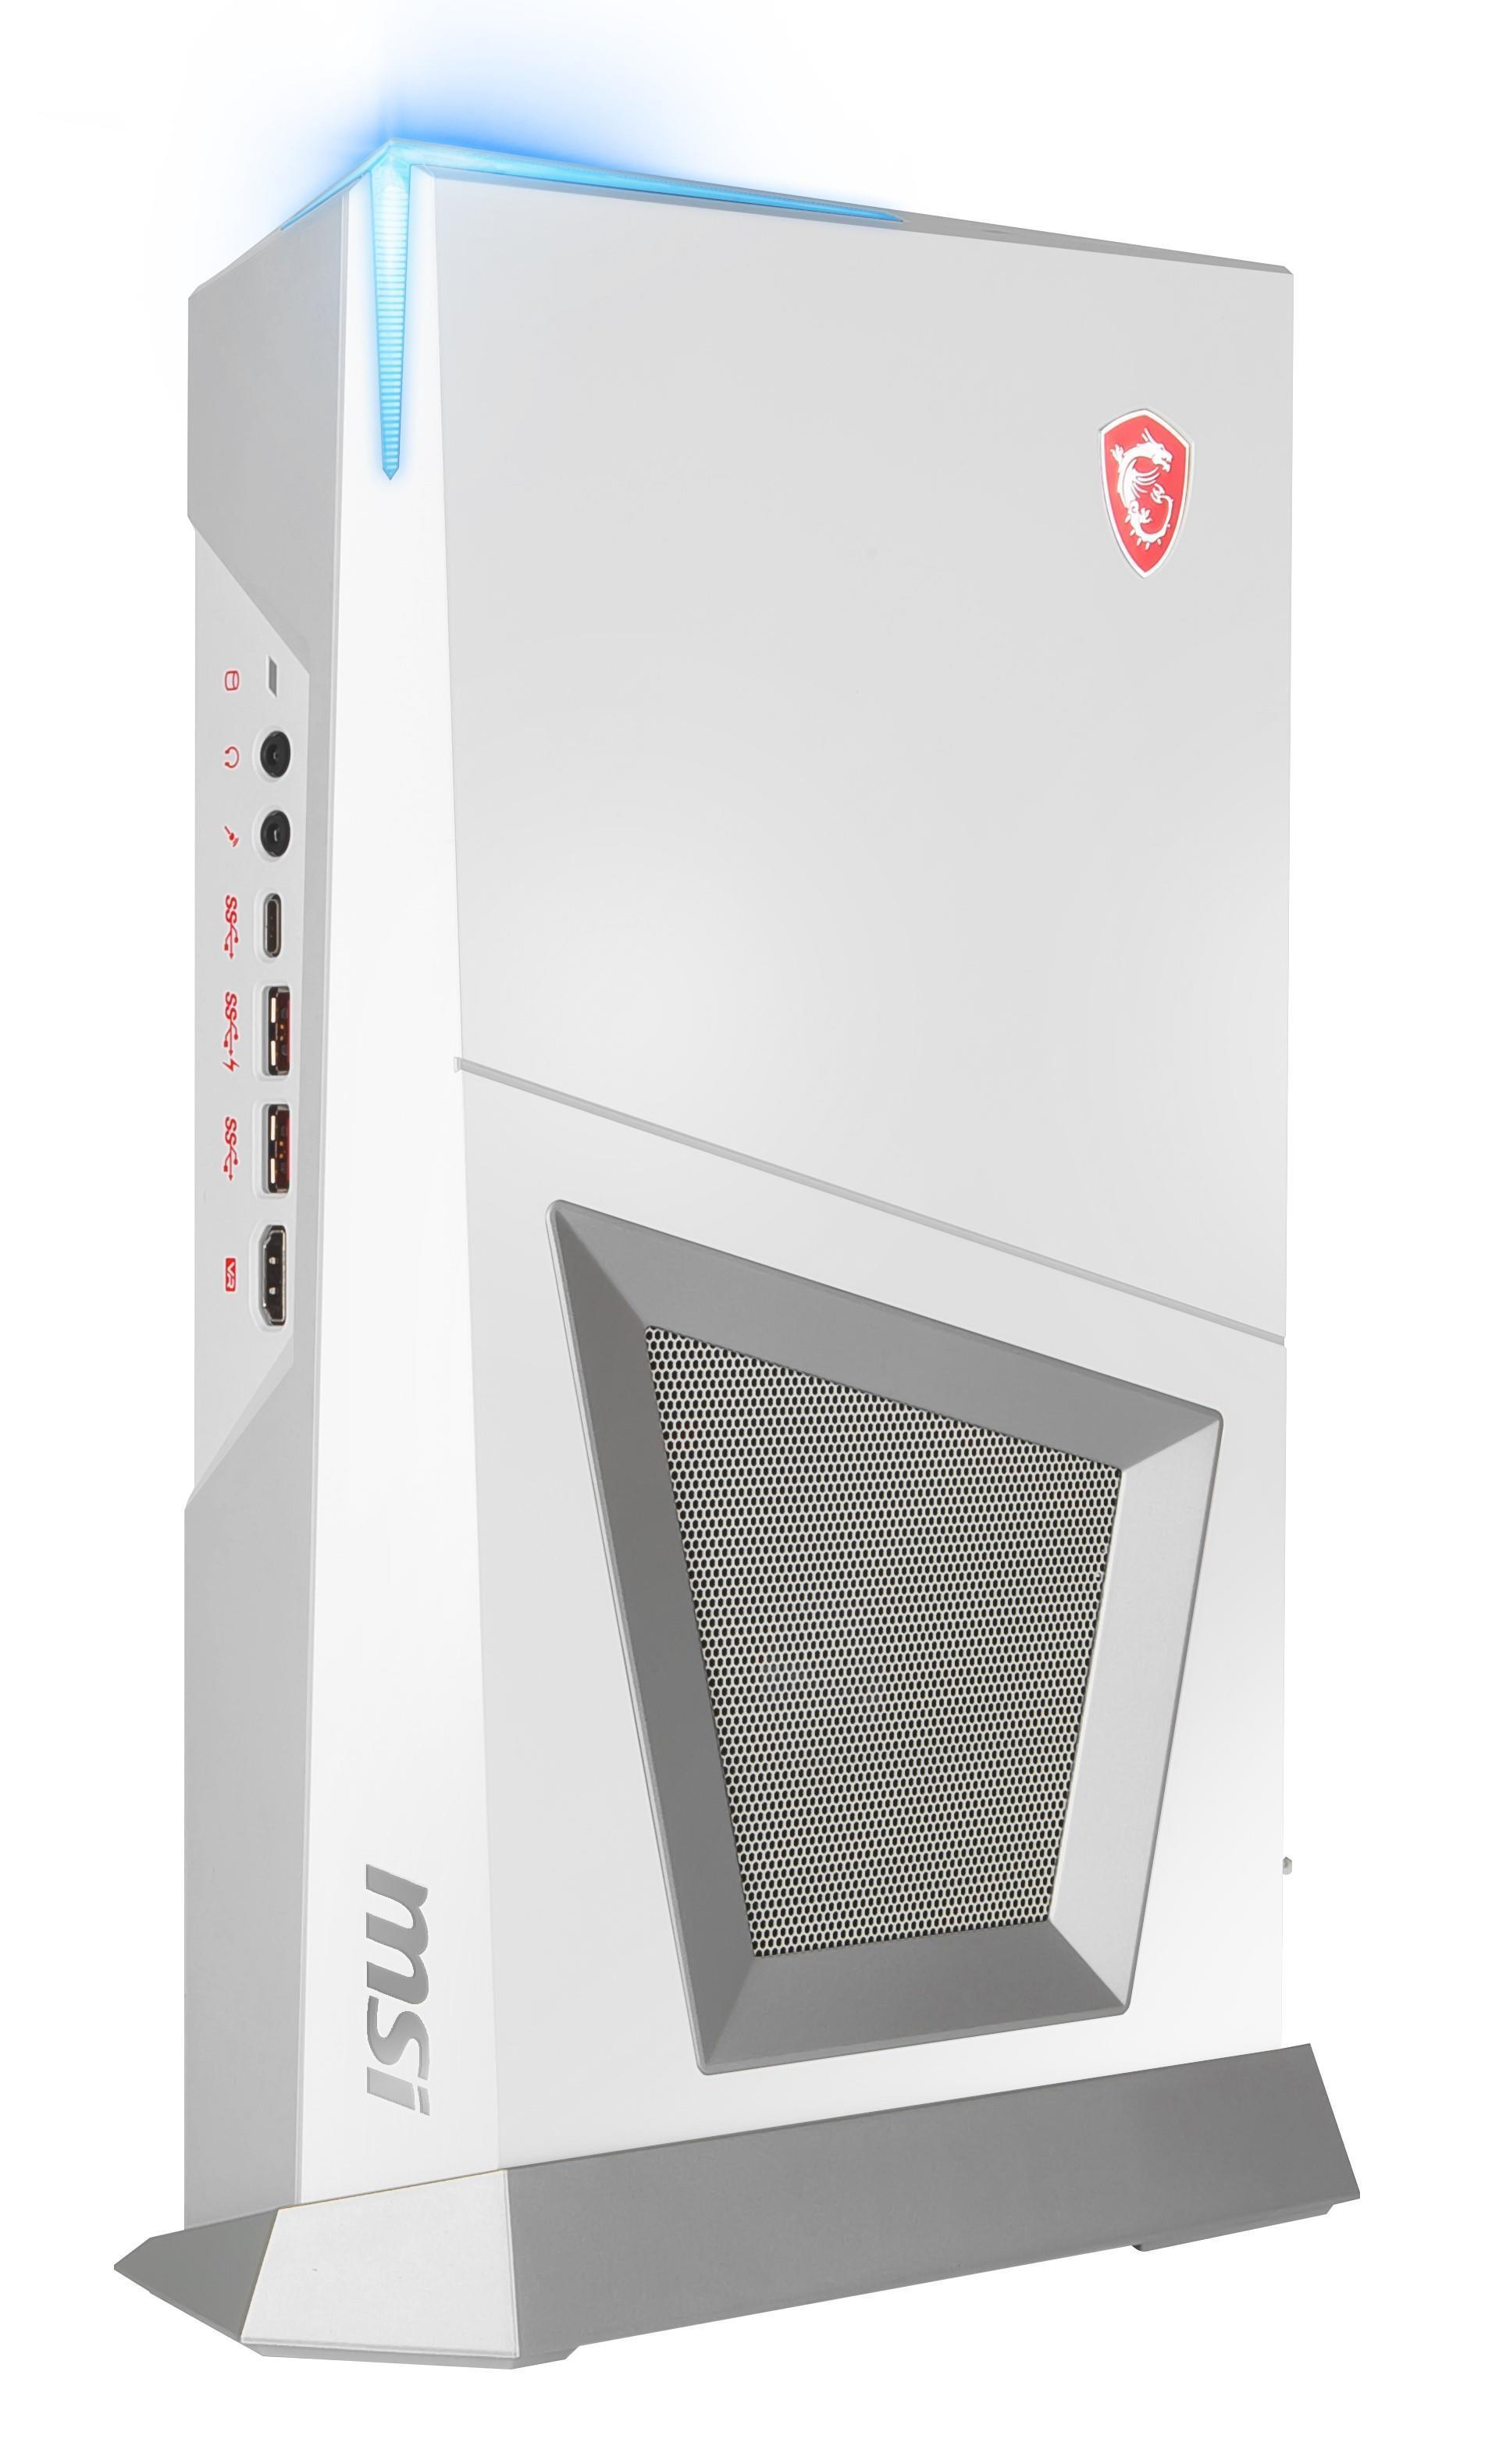 MSI Trident 3 Arctic 8RB-092UK Compact Gaming PC